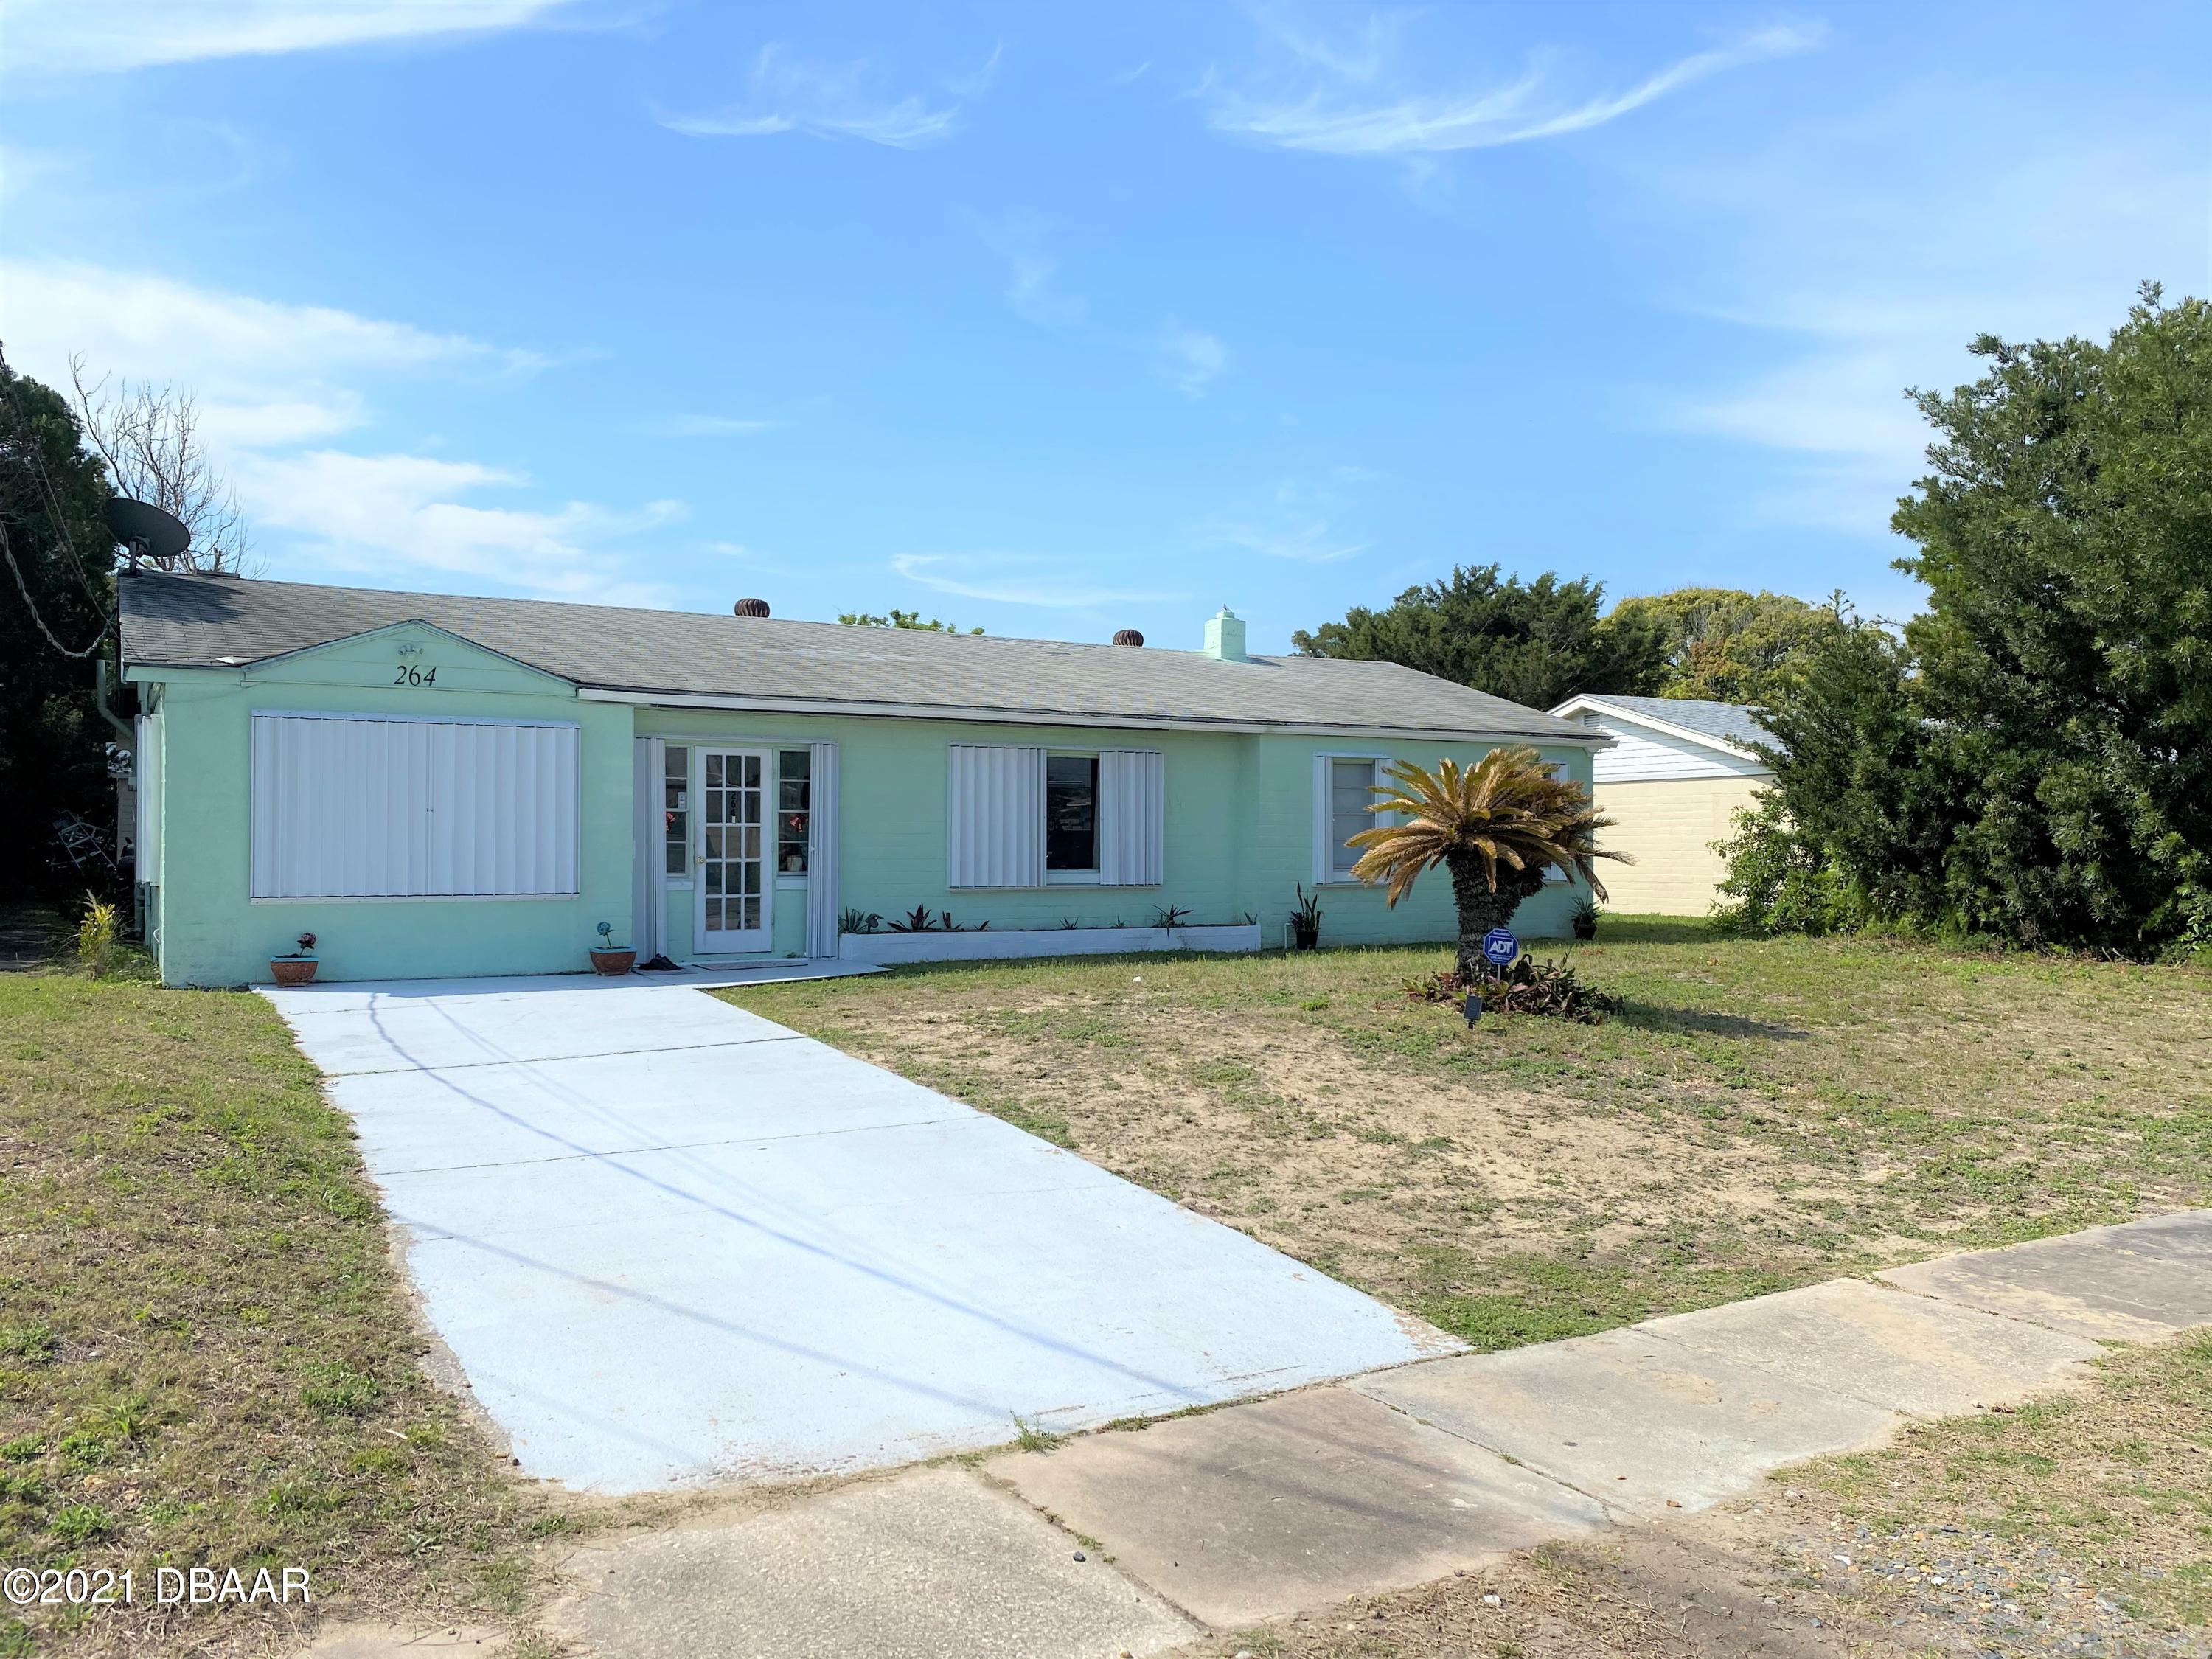 Photo of 264 Boylston Avenue, Daytona Beach, FL 32118